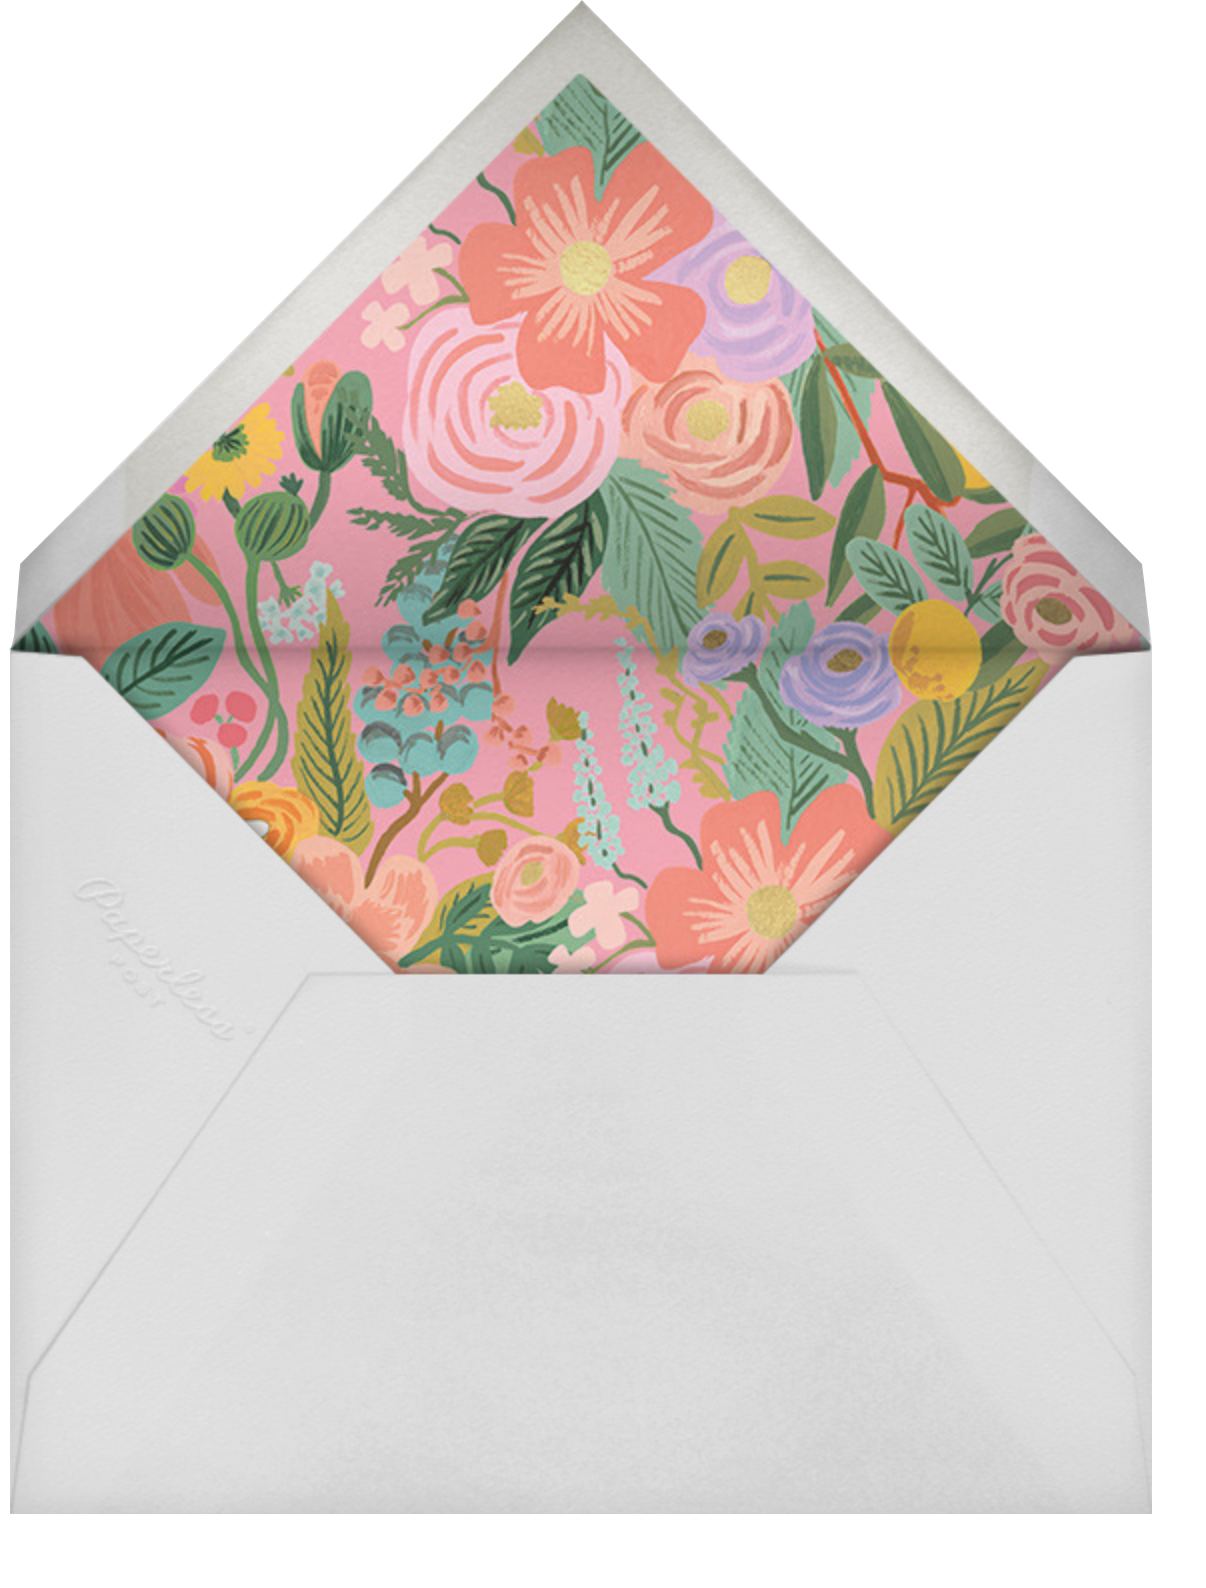 Garden Party (Square) - Rifle Paper Co. - Printable invitations - envelope back